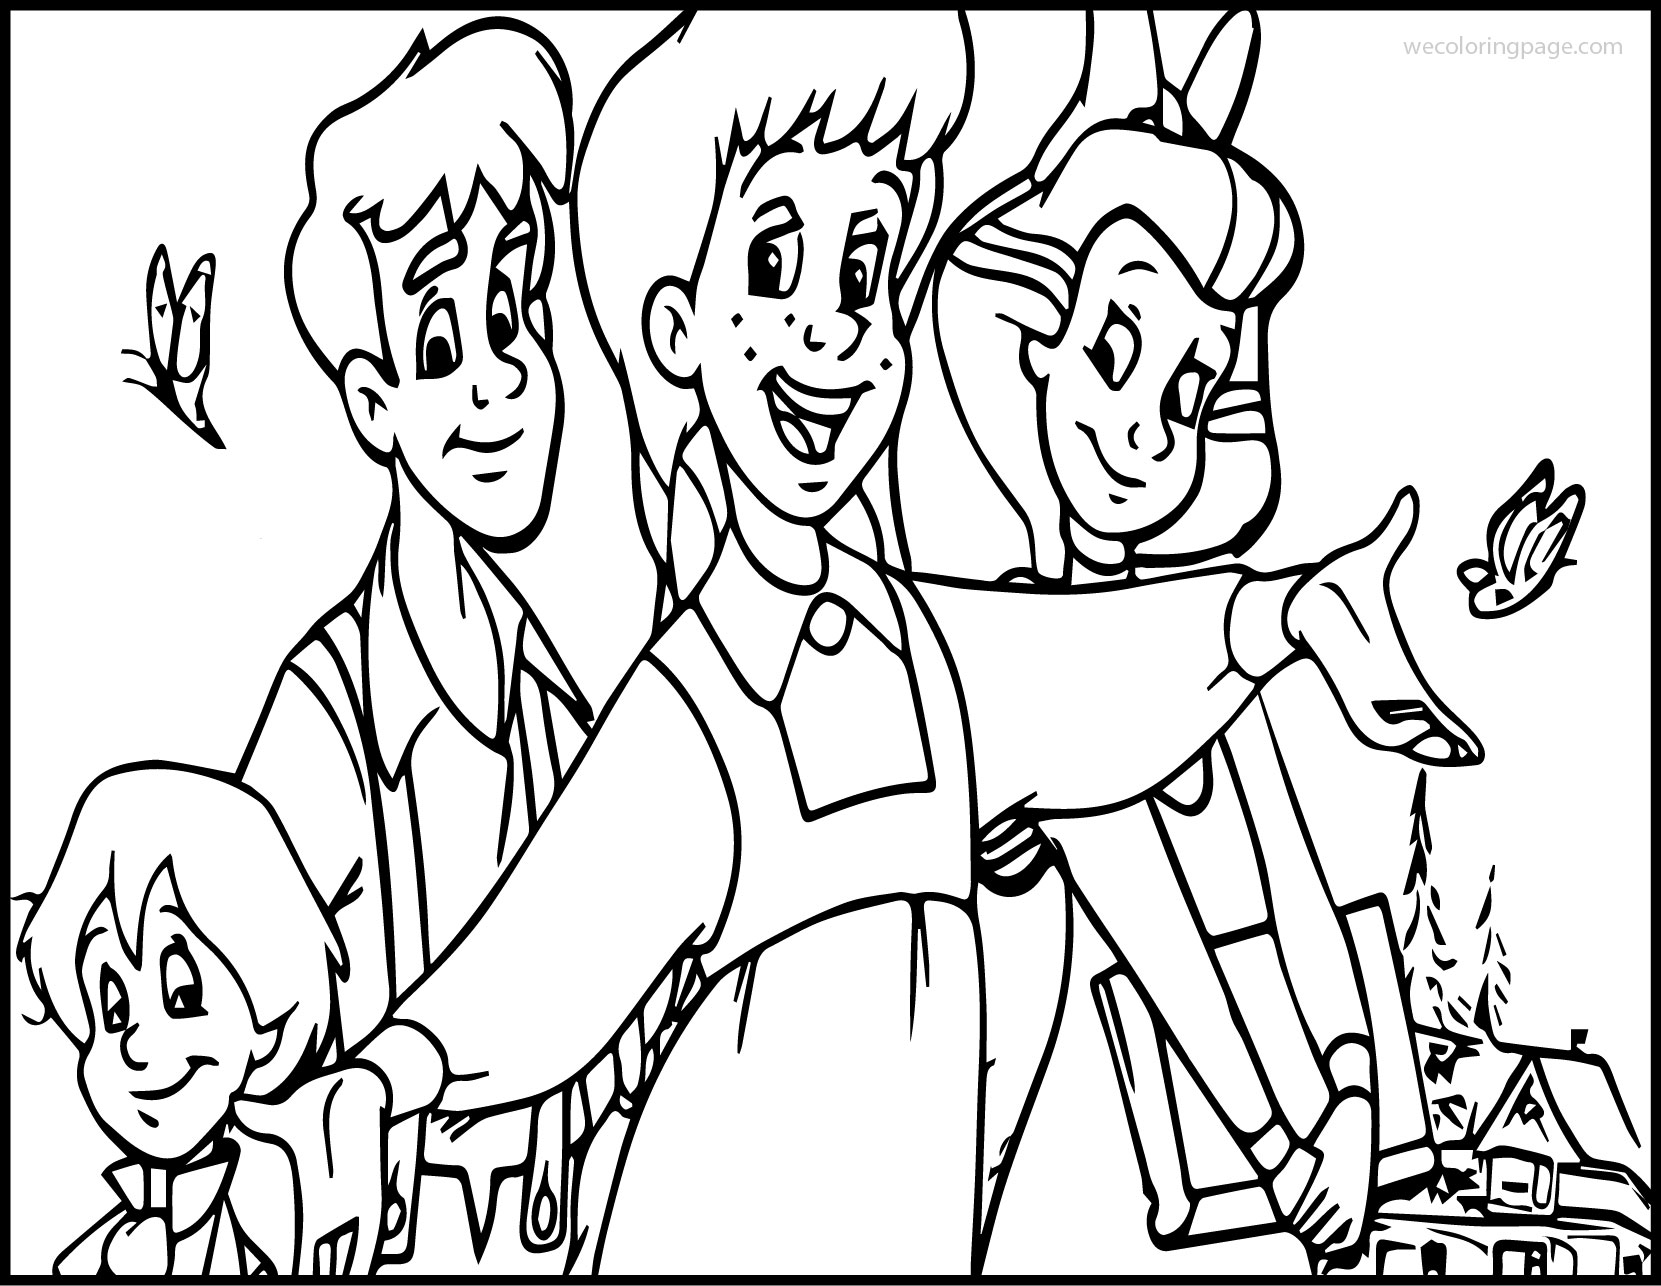 Anne Green Gables The Series Coloring Page